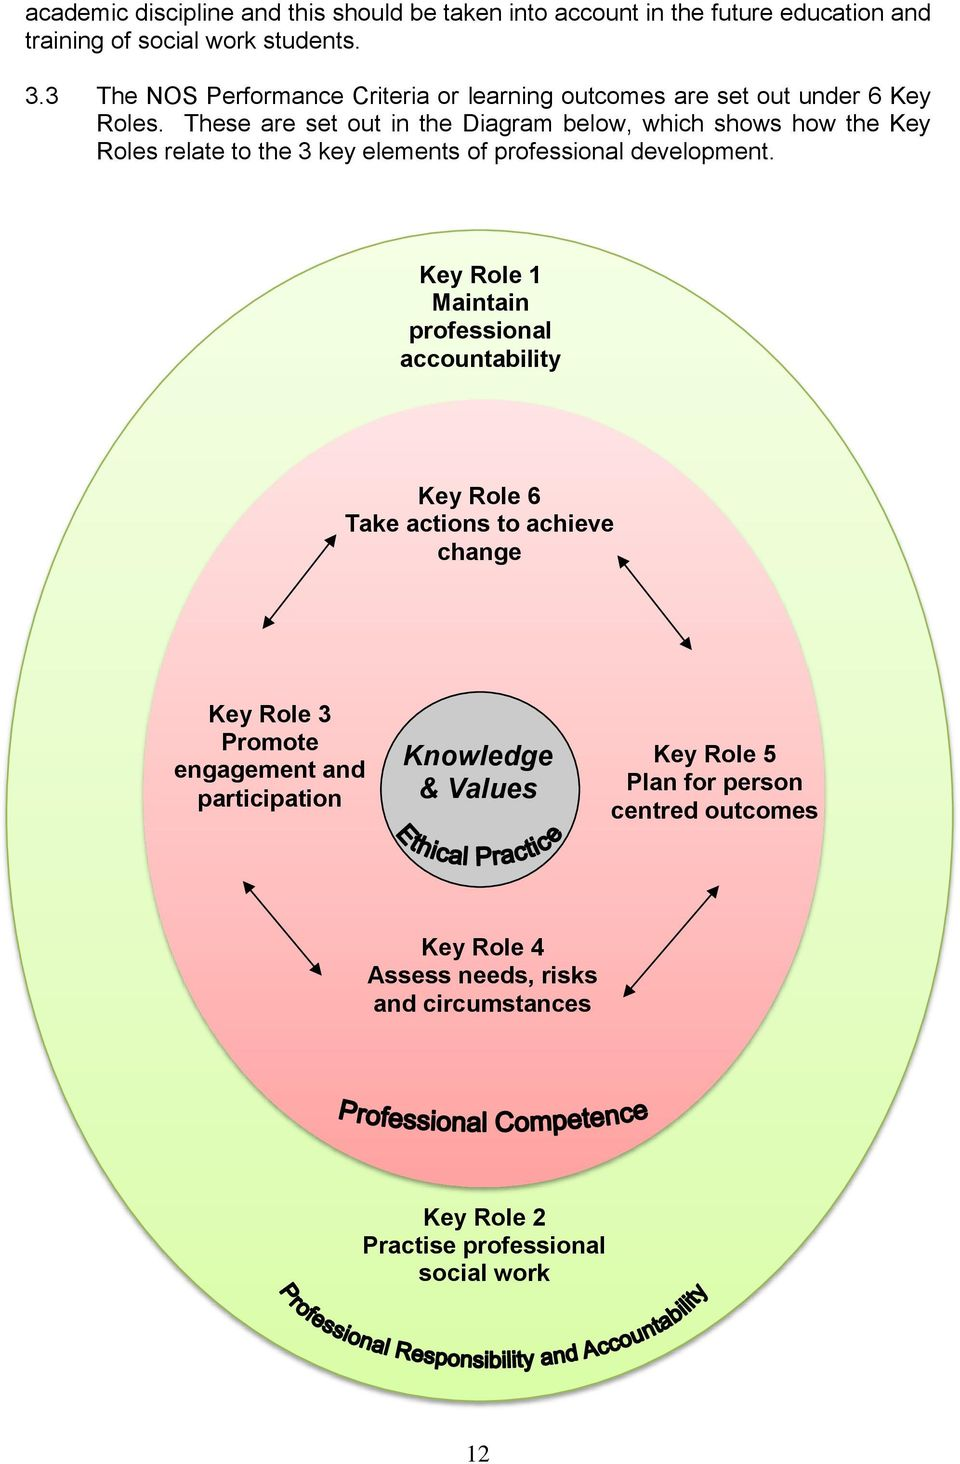 These are set out in the Diagram below, which shows how the Key Roles relate to the 3 key elements of professional development.